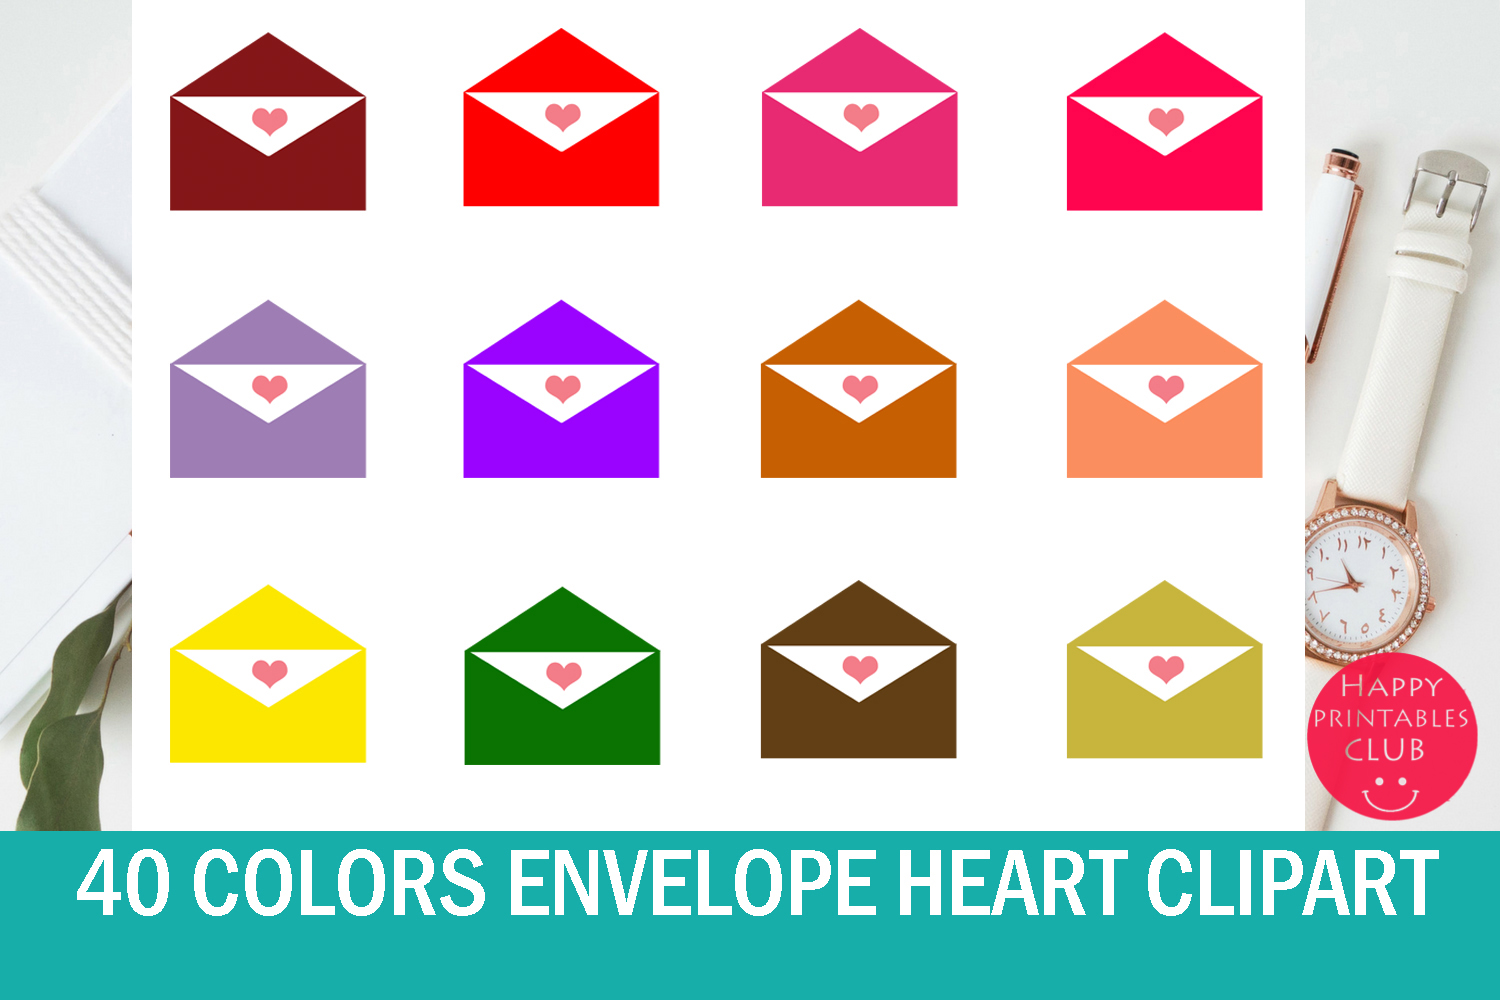 Download Free Envelope With Heart Clipart Grafik Von Happy Printables Club for Cricut Explore, Silhouette and other cutting machines.